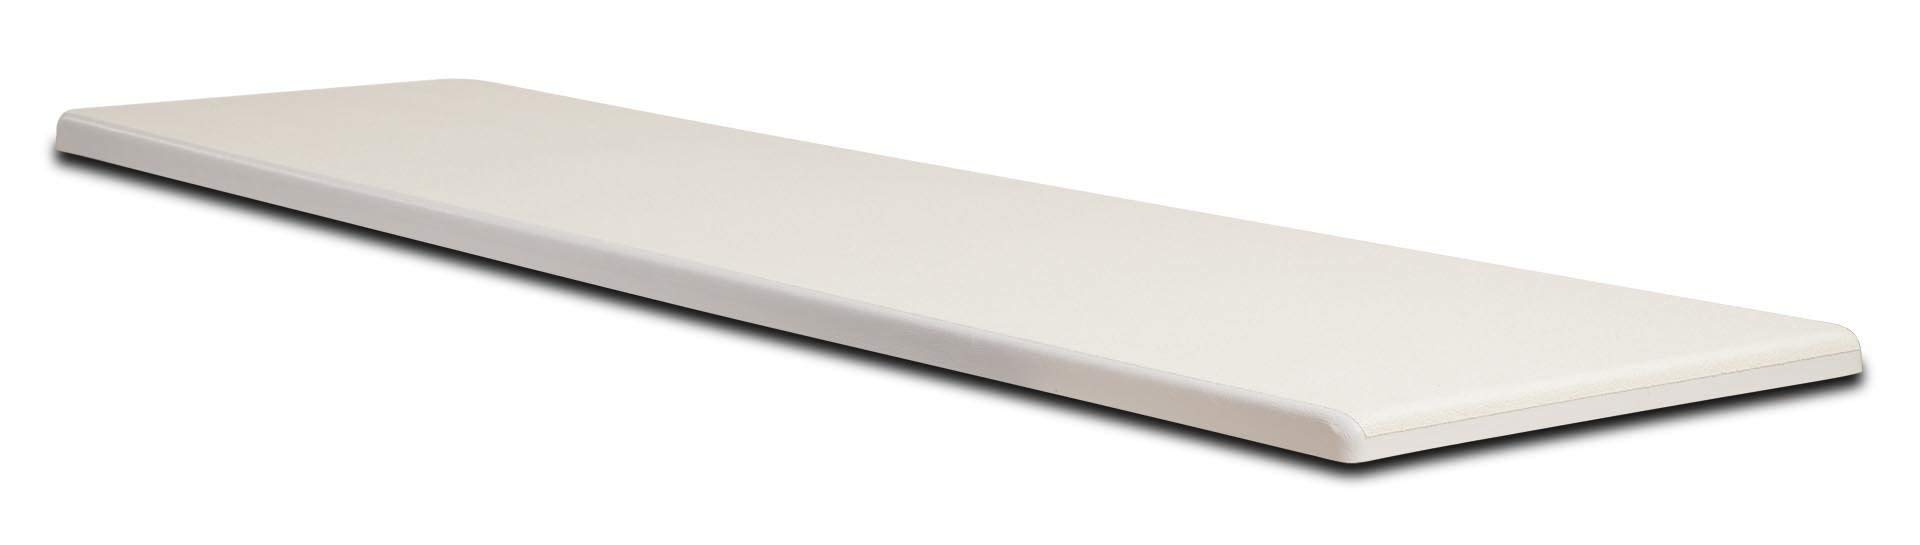 S.R. Smith 66-209-596S2 Frontier III Replacement Diving Board, 6-Feet, Radiant White (Renewed) by S.R. Smith